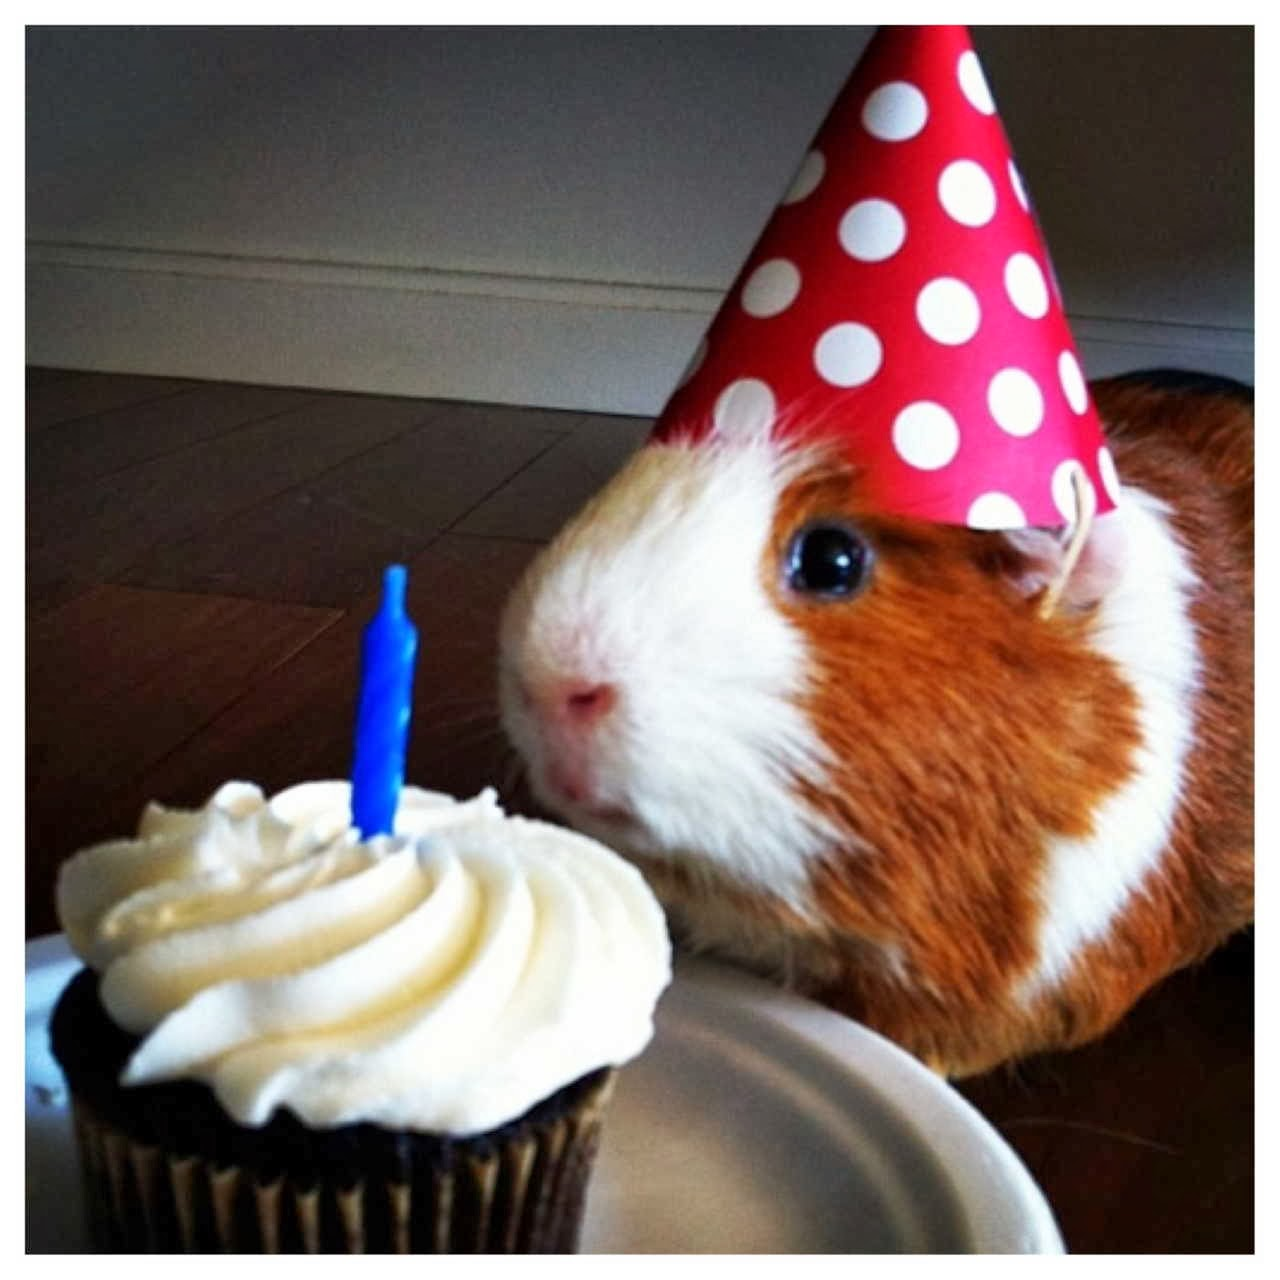 Funny animals of the week - 10 January 2014 (35 pics), guinea pig wears party hat